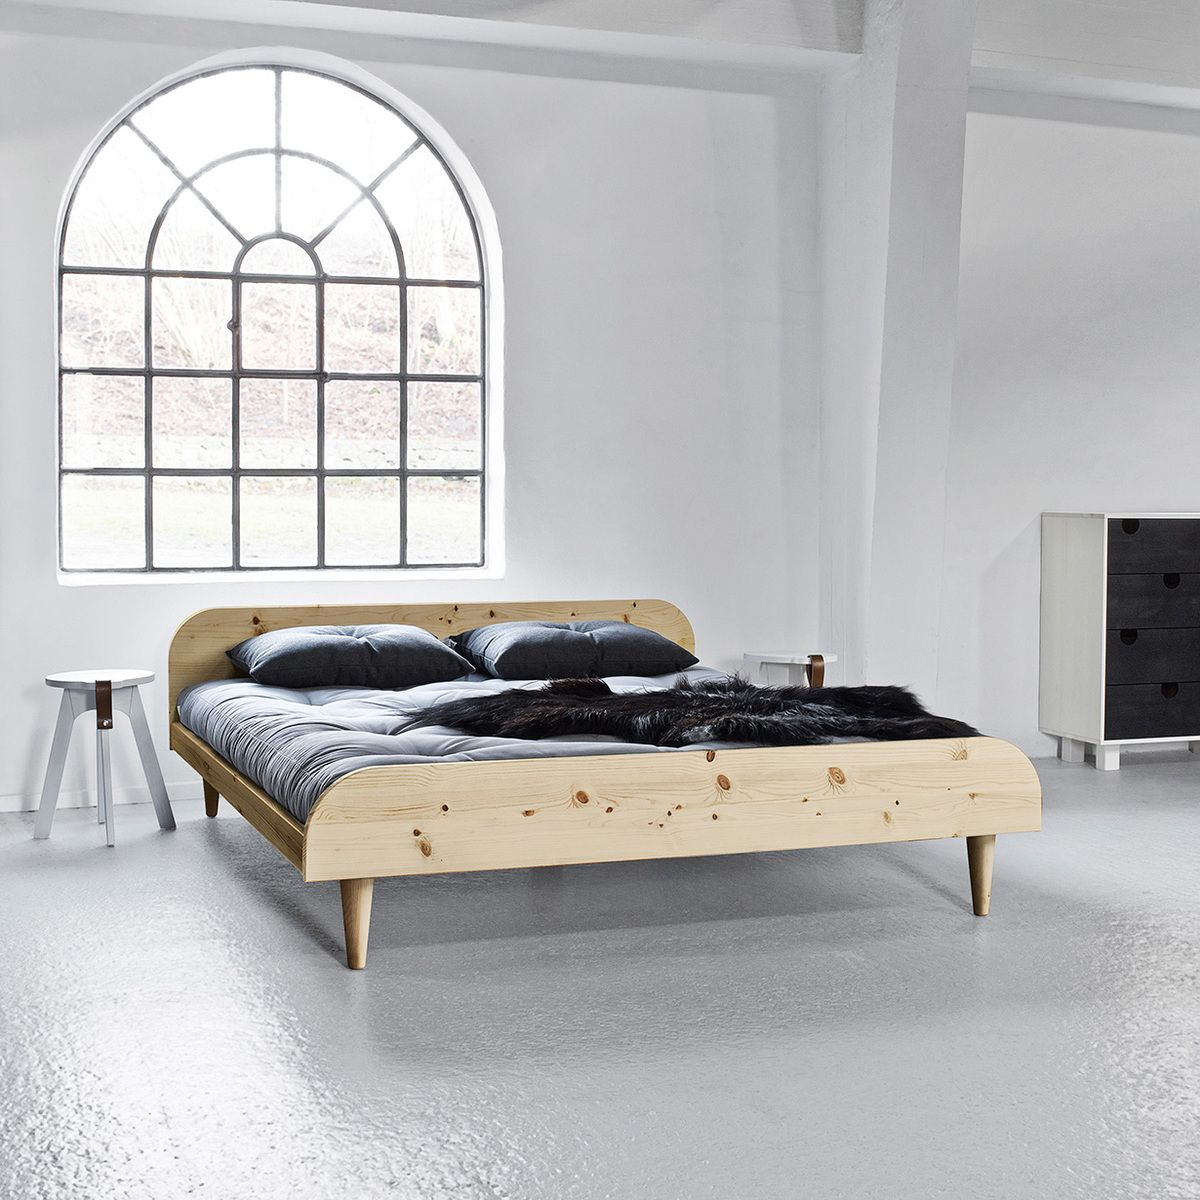 Look No Further Than The Twist S Lush King Size Futon Bed If You Re